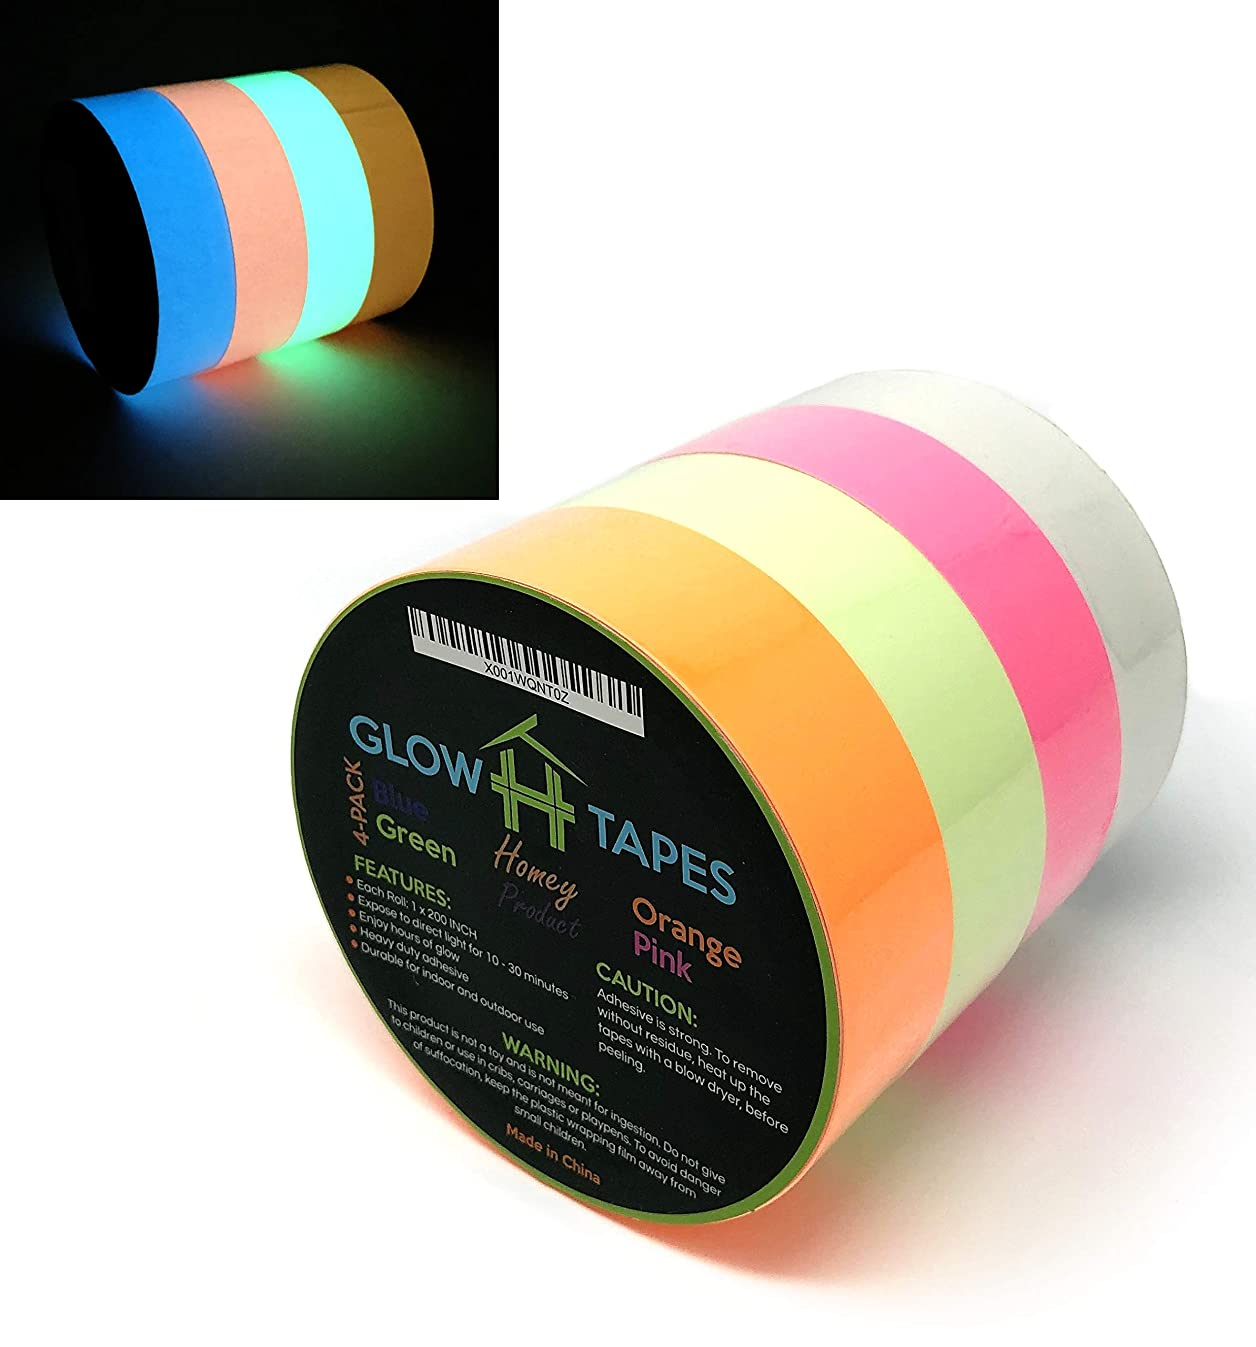 Glow in Dark Tape | Heavy Duty Set of 4 Bright Colors: Green, Orange, Blue, Pink | Strong With Hours of Glow | Great For Glow Party Supplies & Decorations | Each Luminous Glow Tape is 1